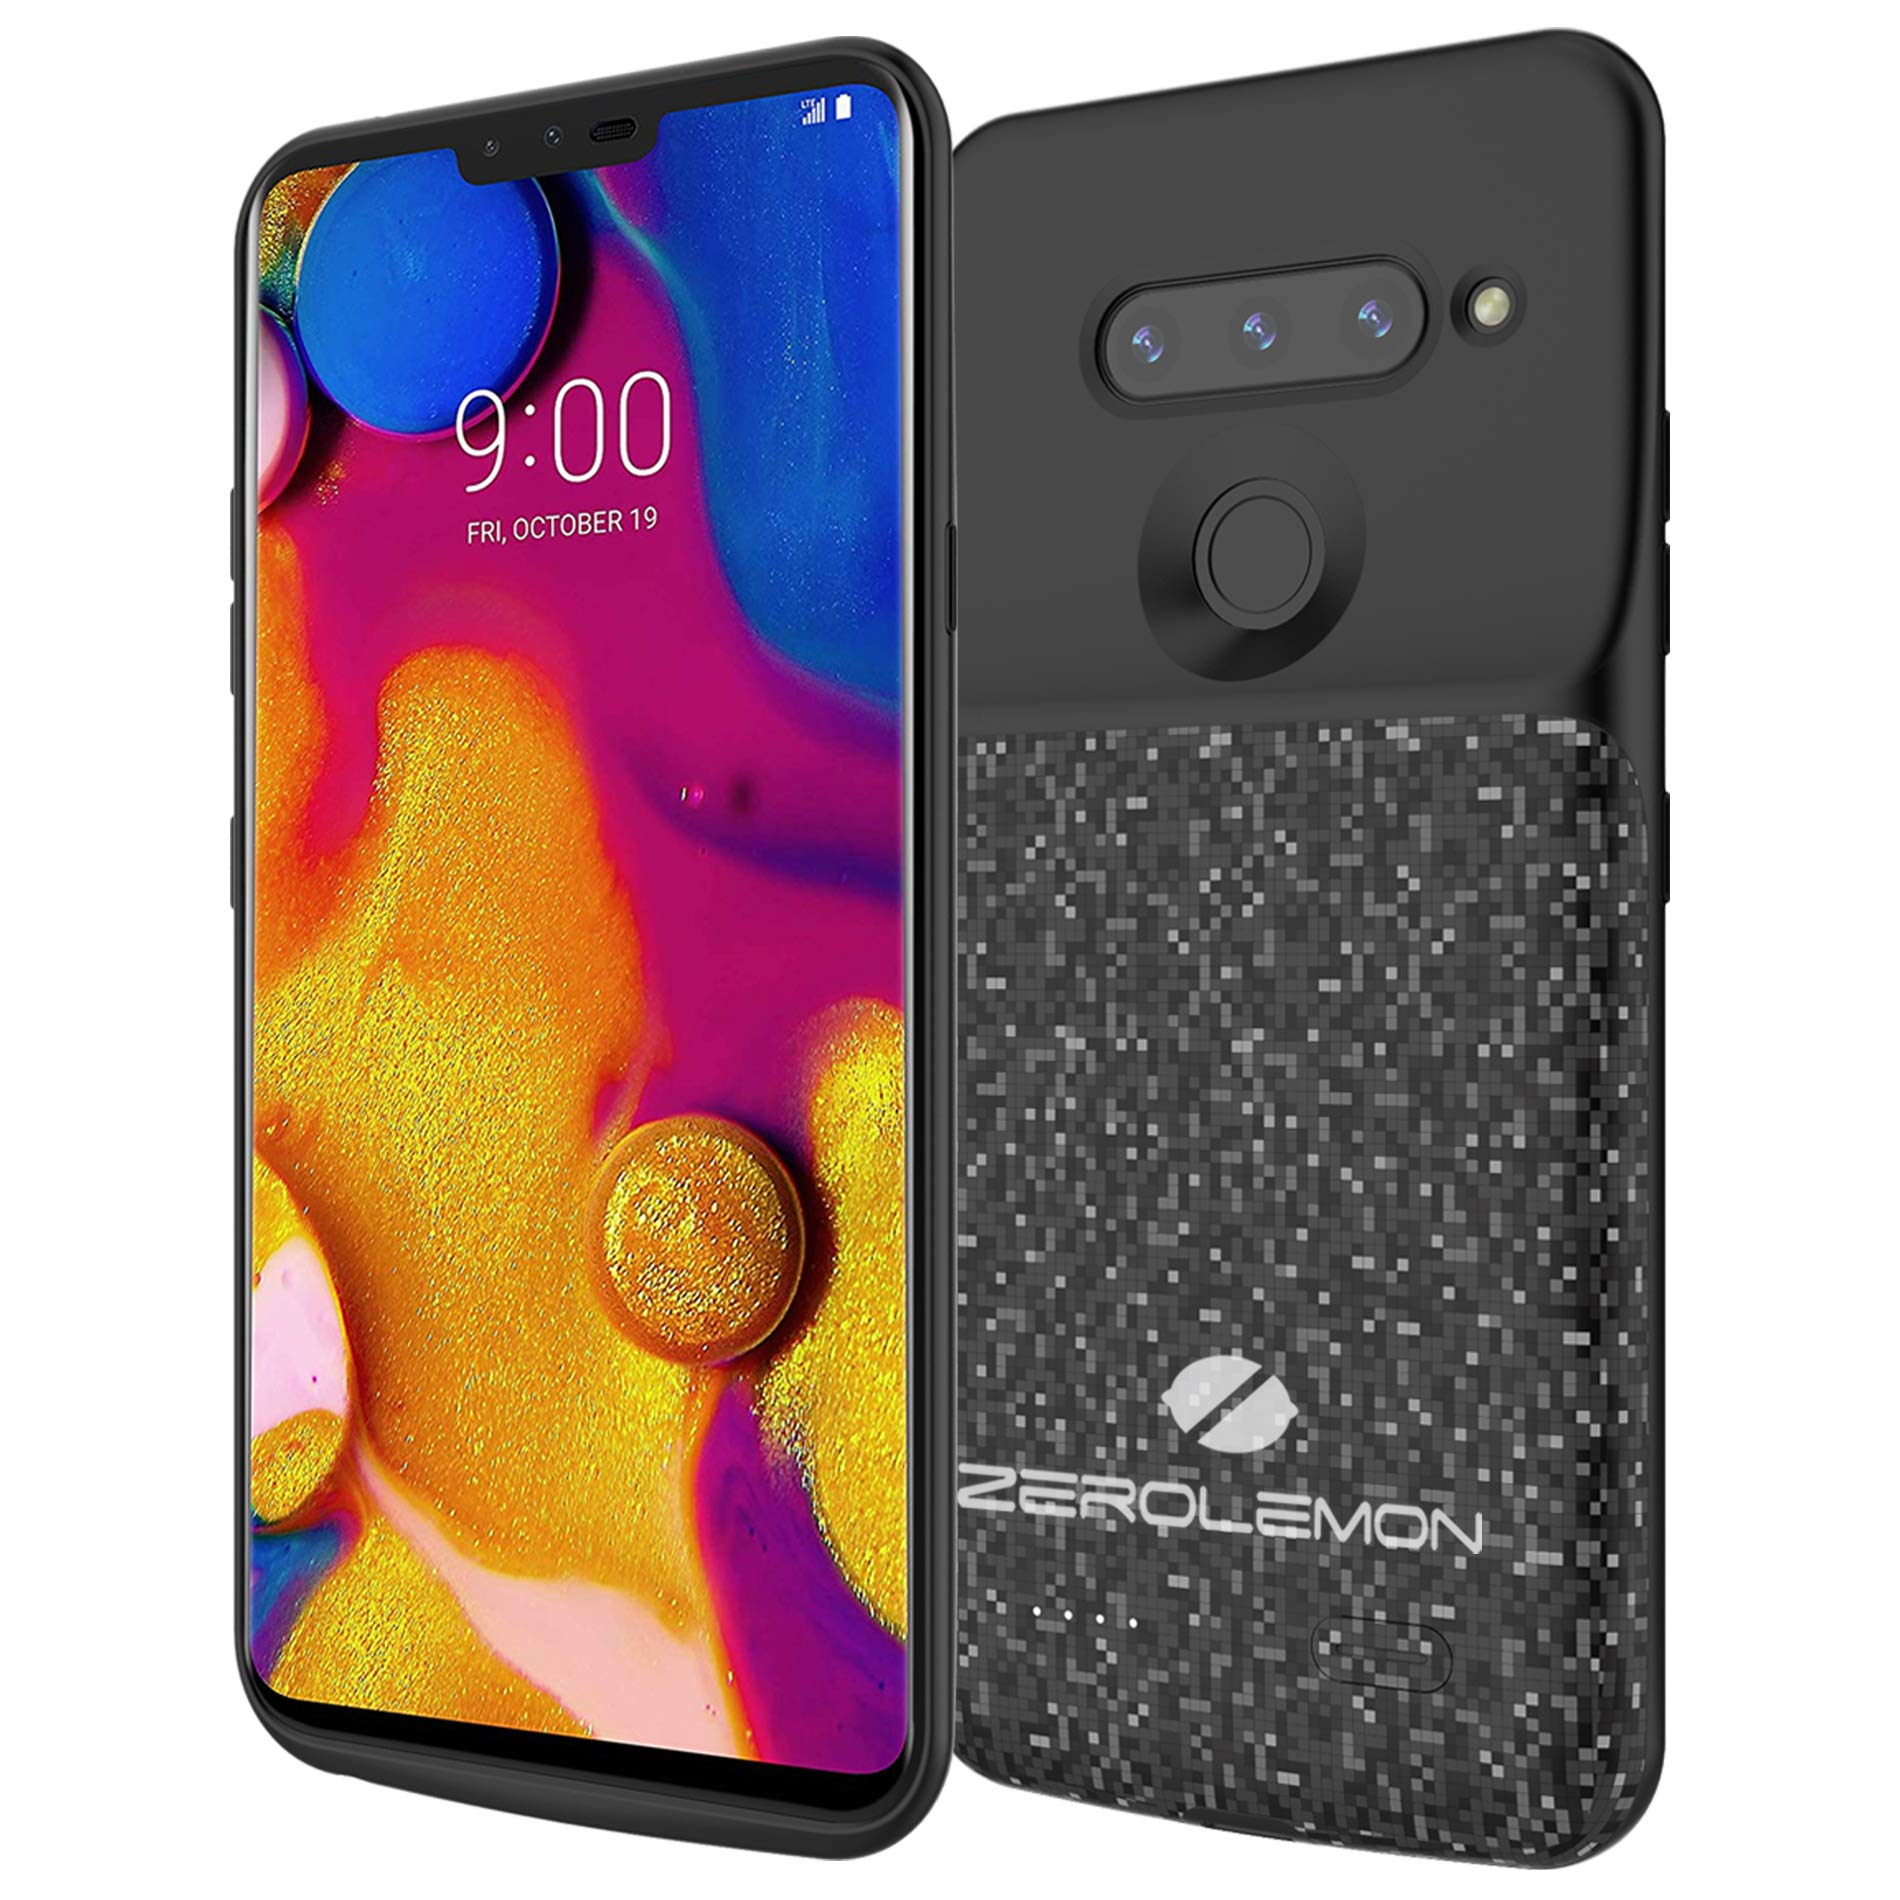 LG V40 ThinQ Battery Charging Case, ZeroLemon Slim Power 5200mAh Extended Battery with Soft TPU Full Edge Protection Case for LG V40 ThinQ - Black